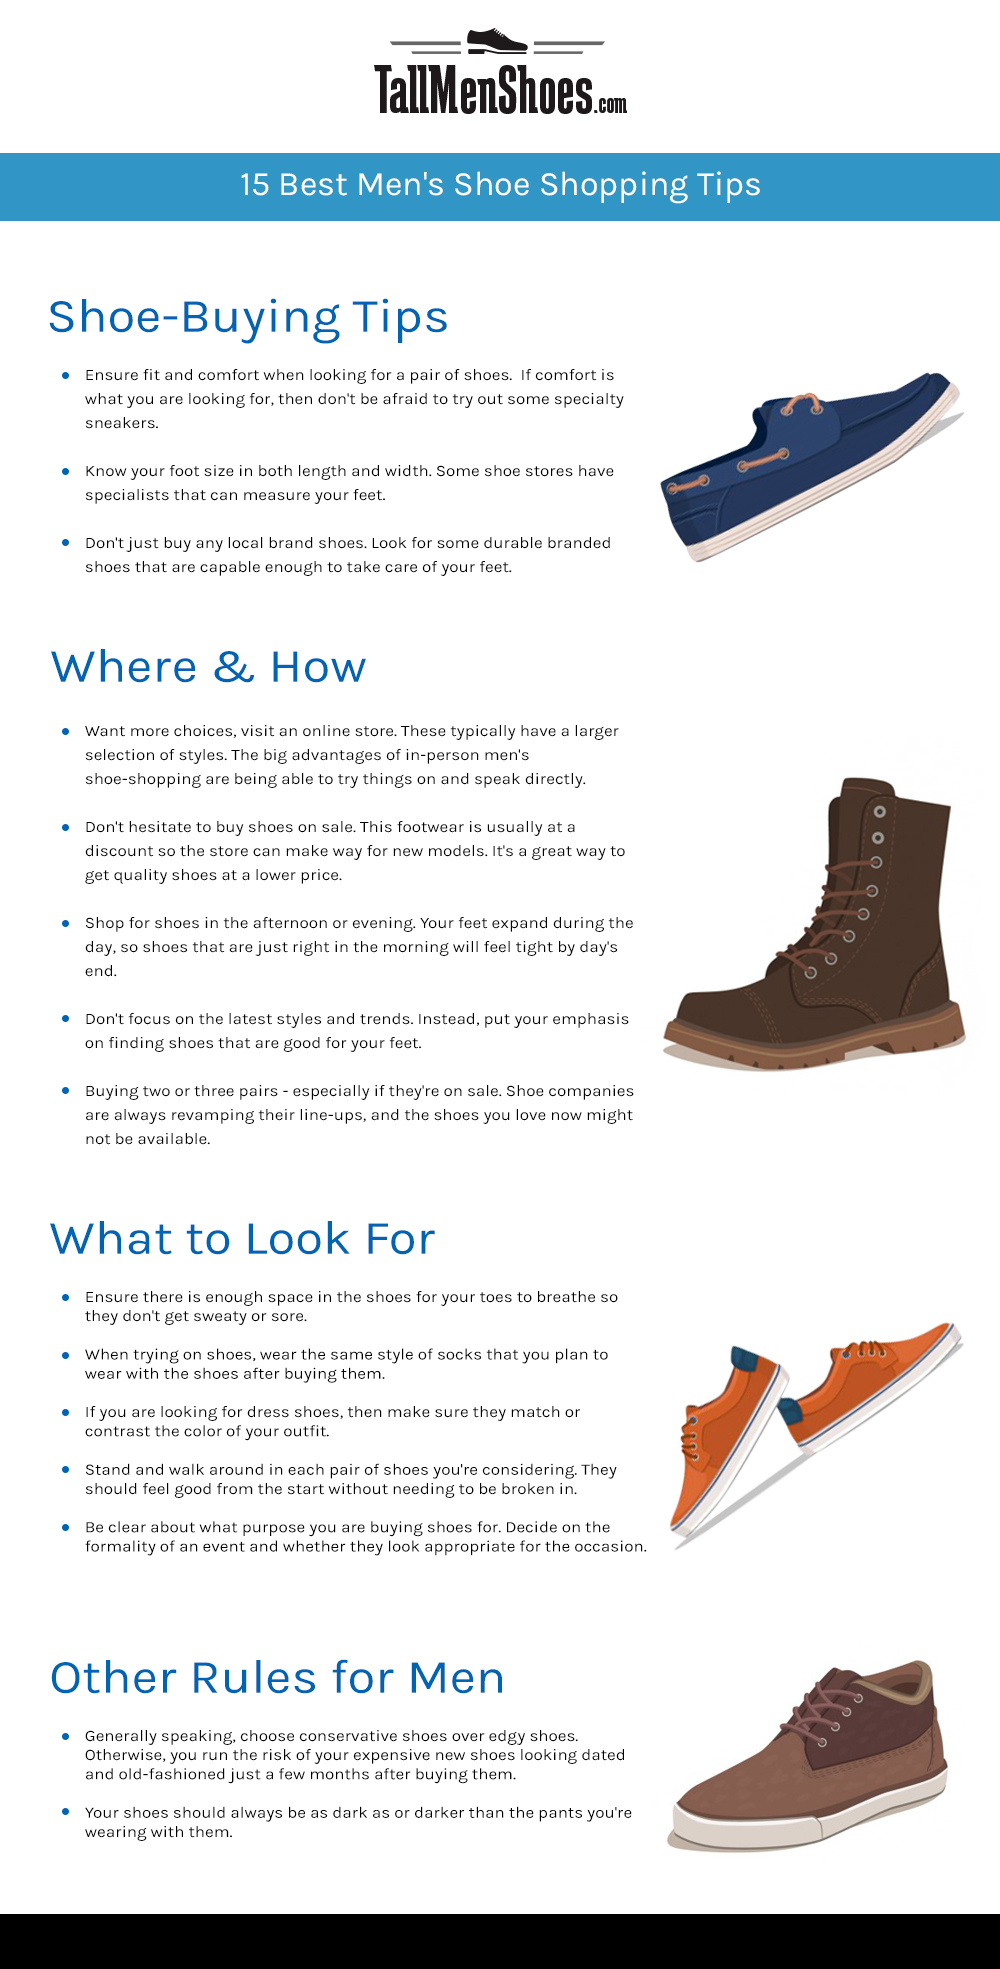 Shopping Tips for Buying Men's Shoes